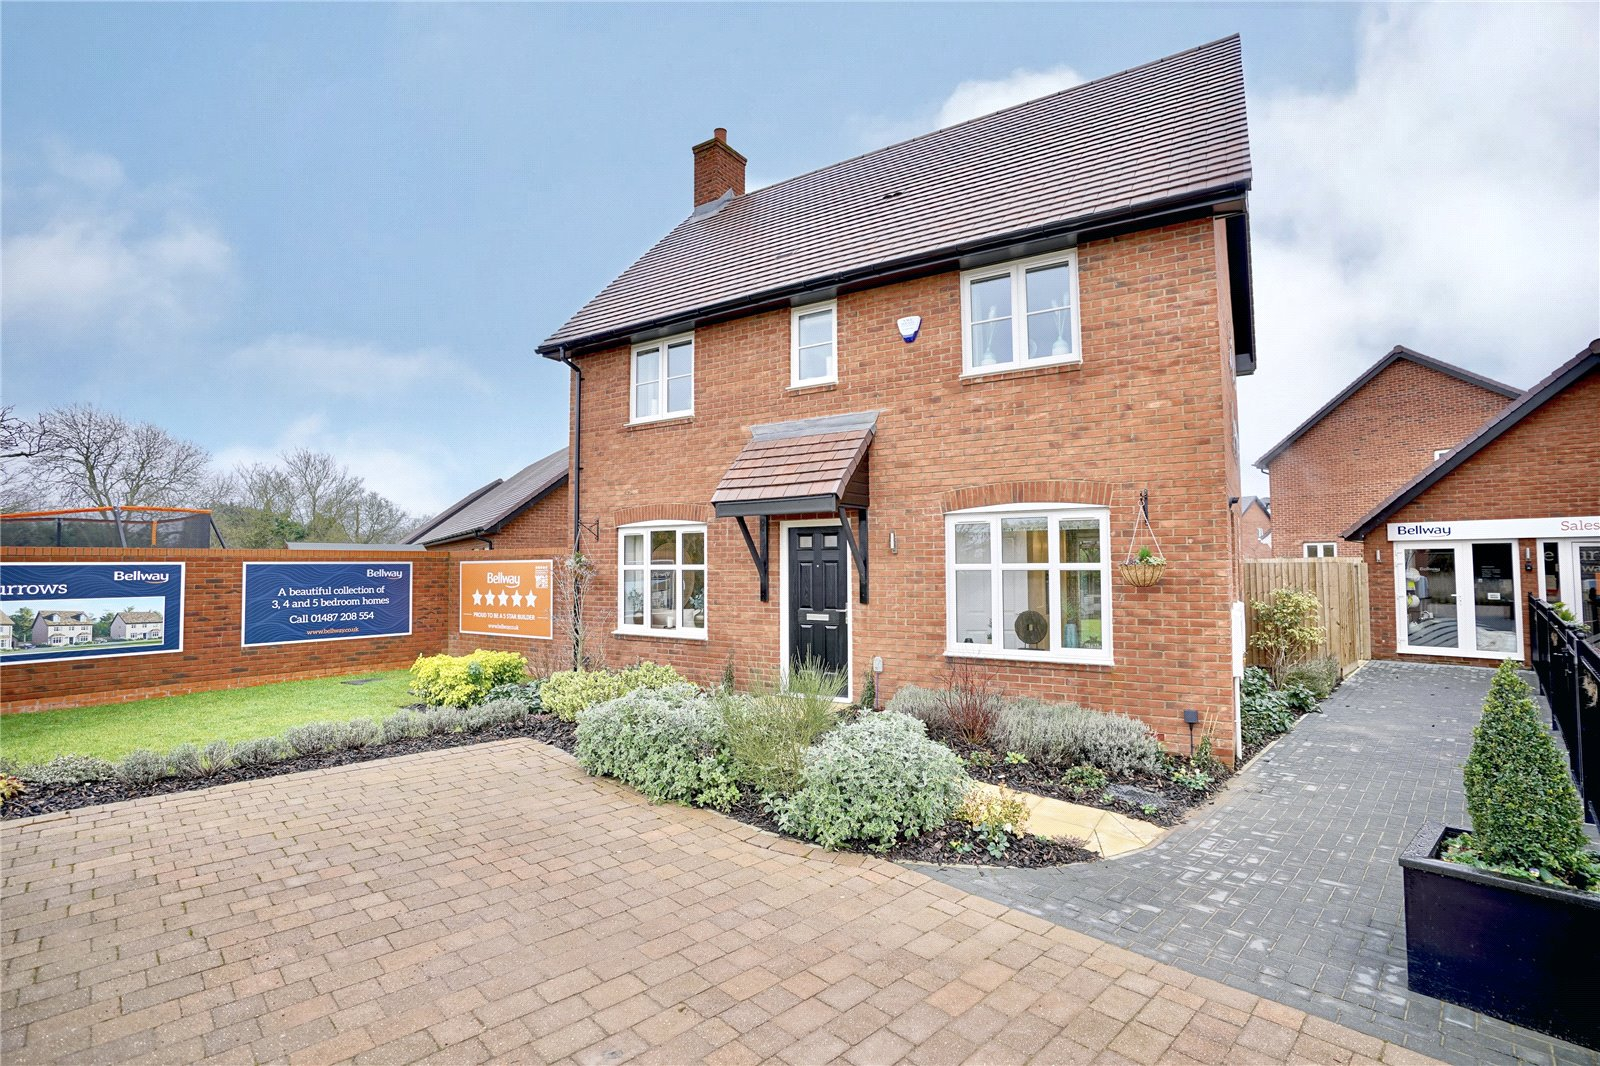 3 bed house for sale in Warboys, PE28 2JJ  - Property Image 1